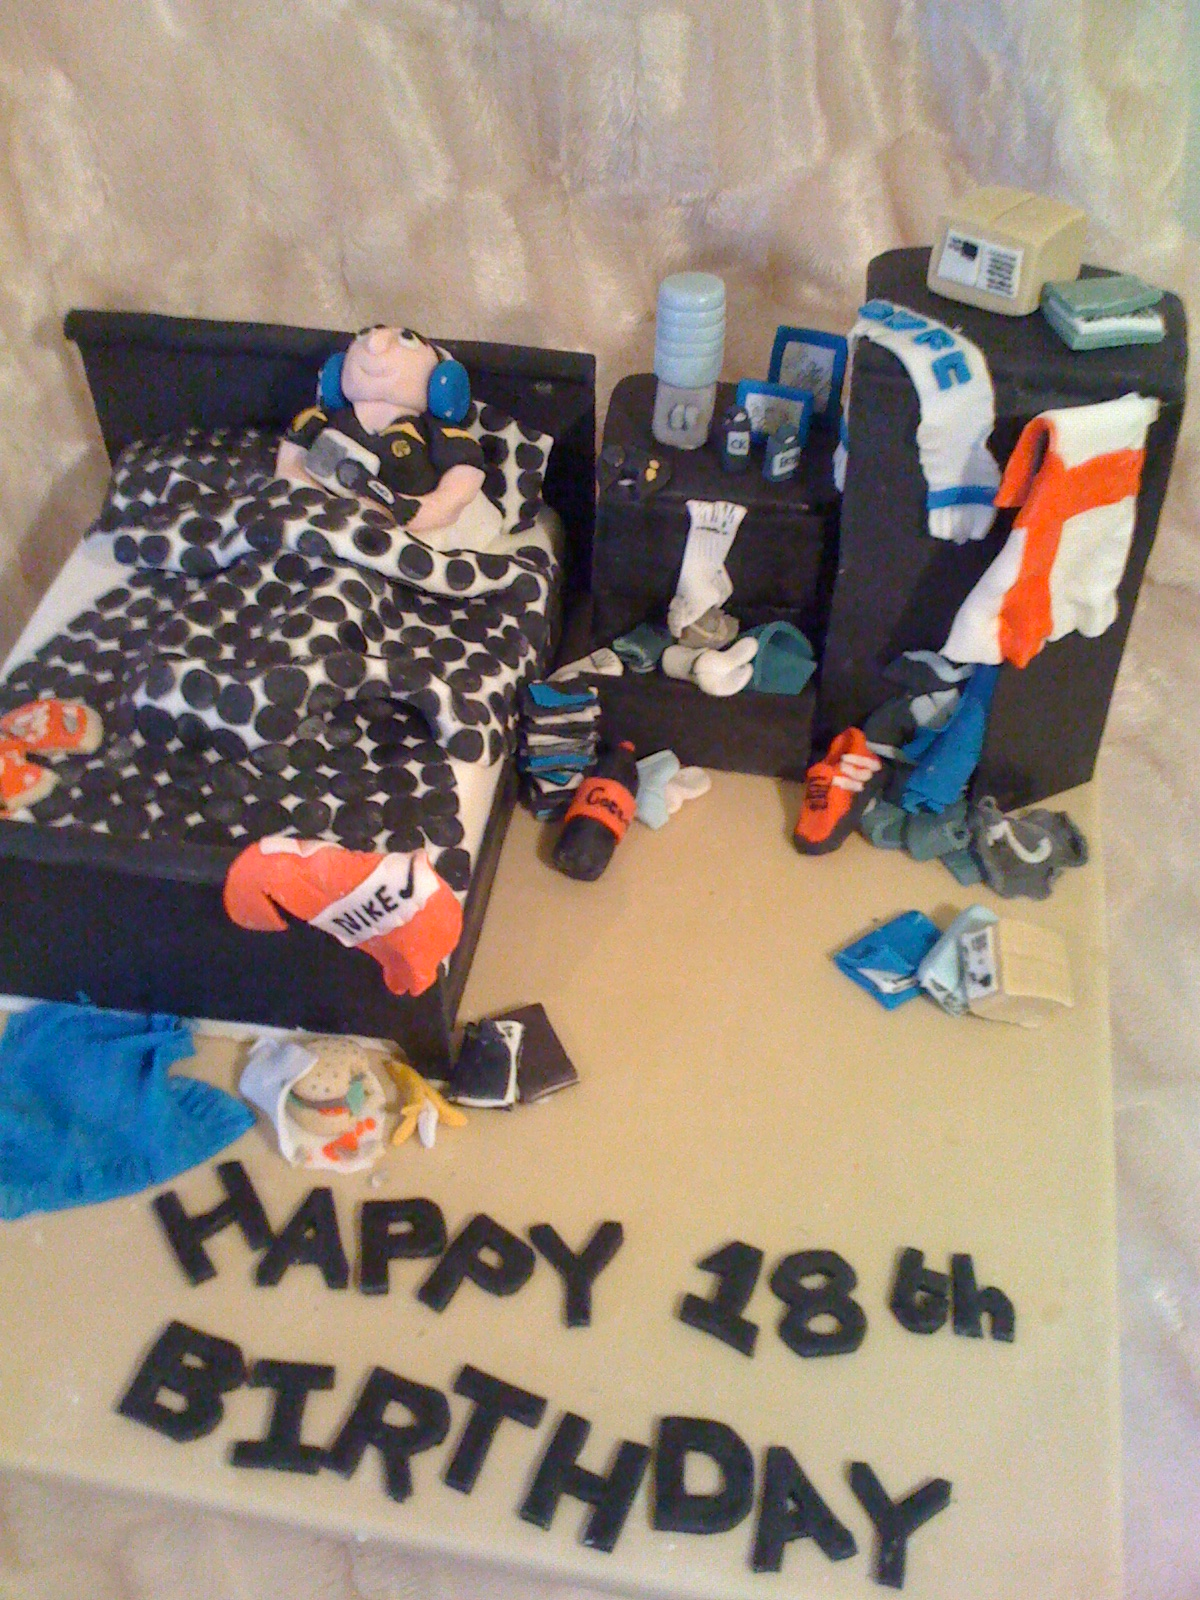 Messy boys bedroom cake for 16 year old boys bedroom ideas